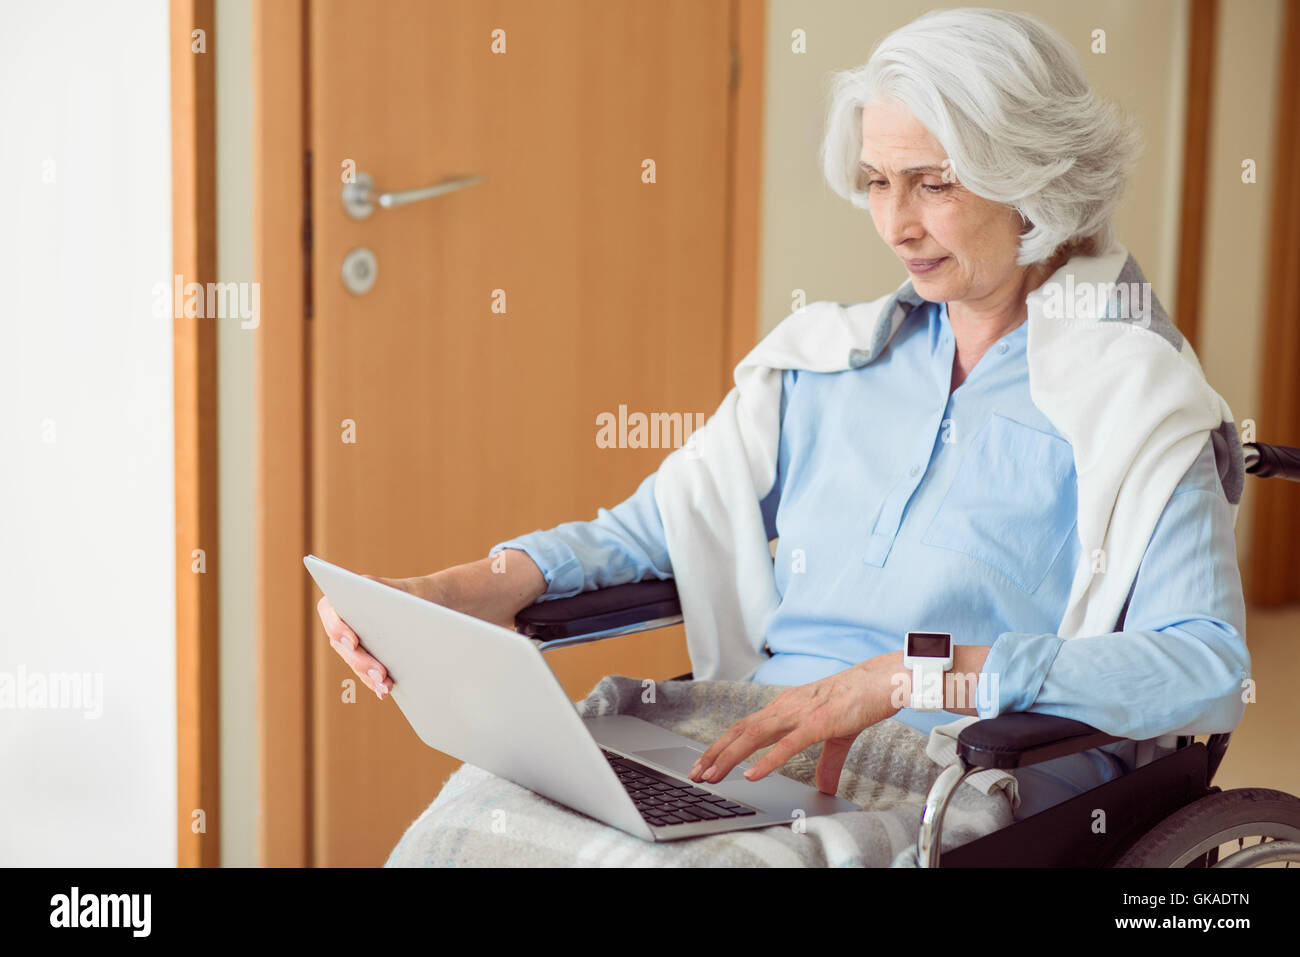 Senior female patient using computer - Stock Image